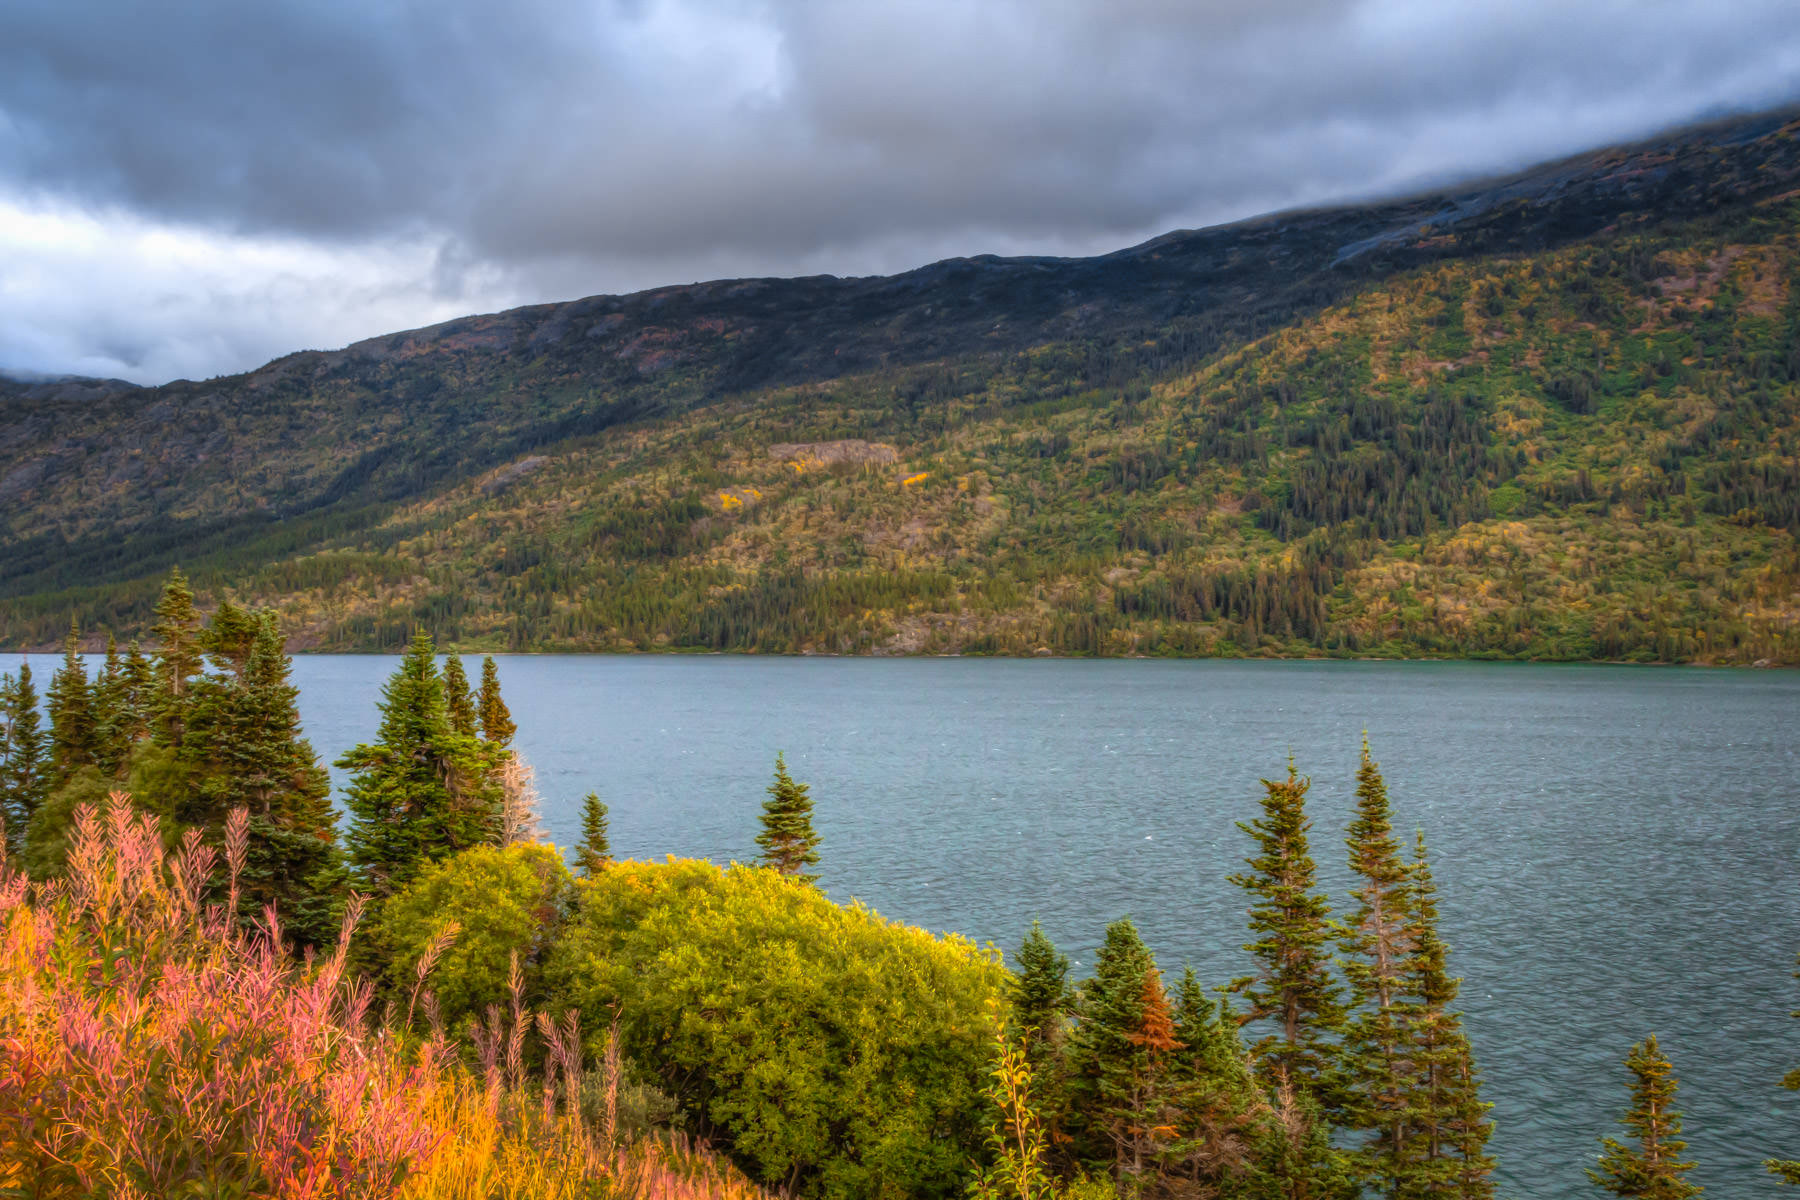 Storm clouds begin to form over Tutshi Lake in the low mountains near Carcross, Yukon Territory, Canada.